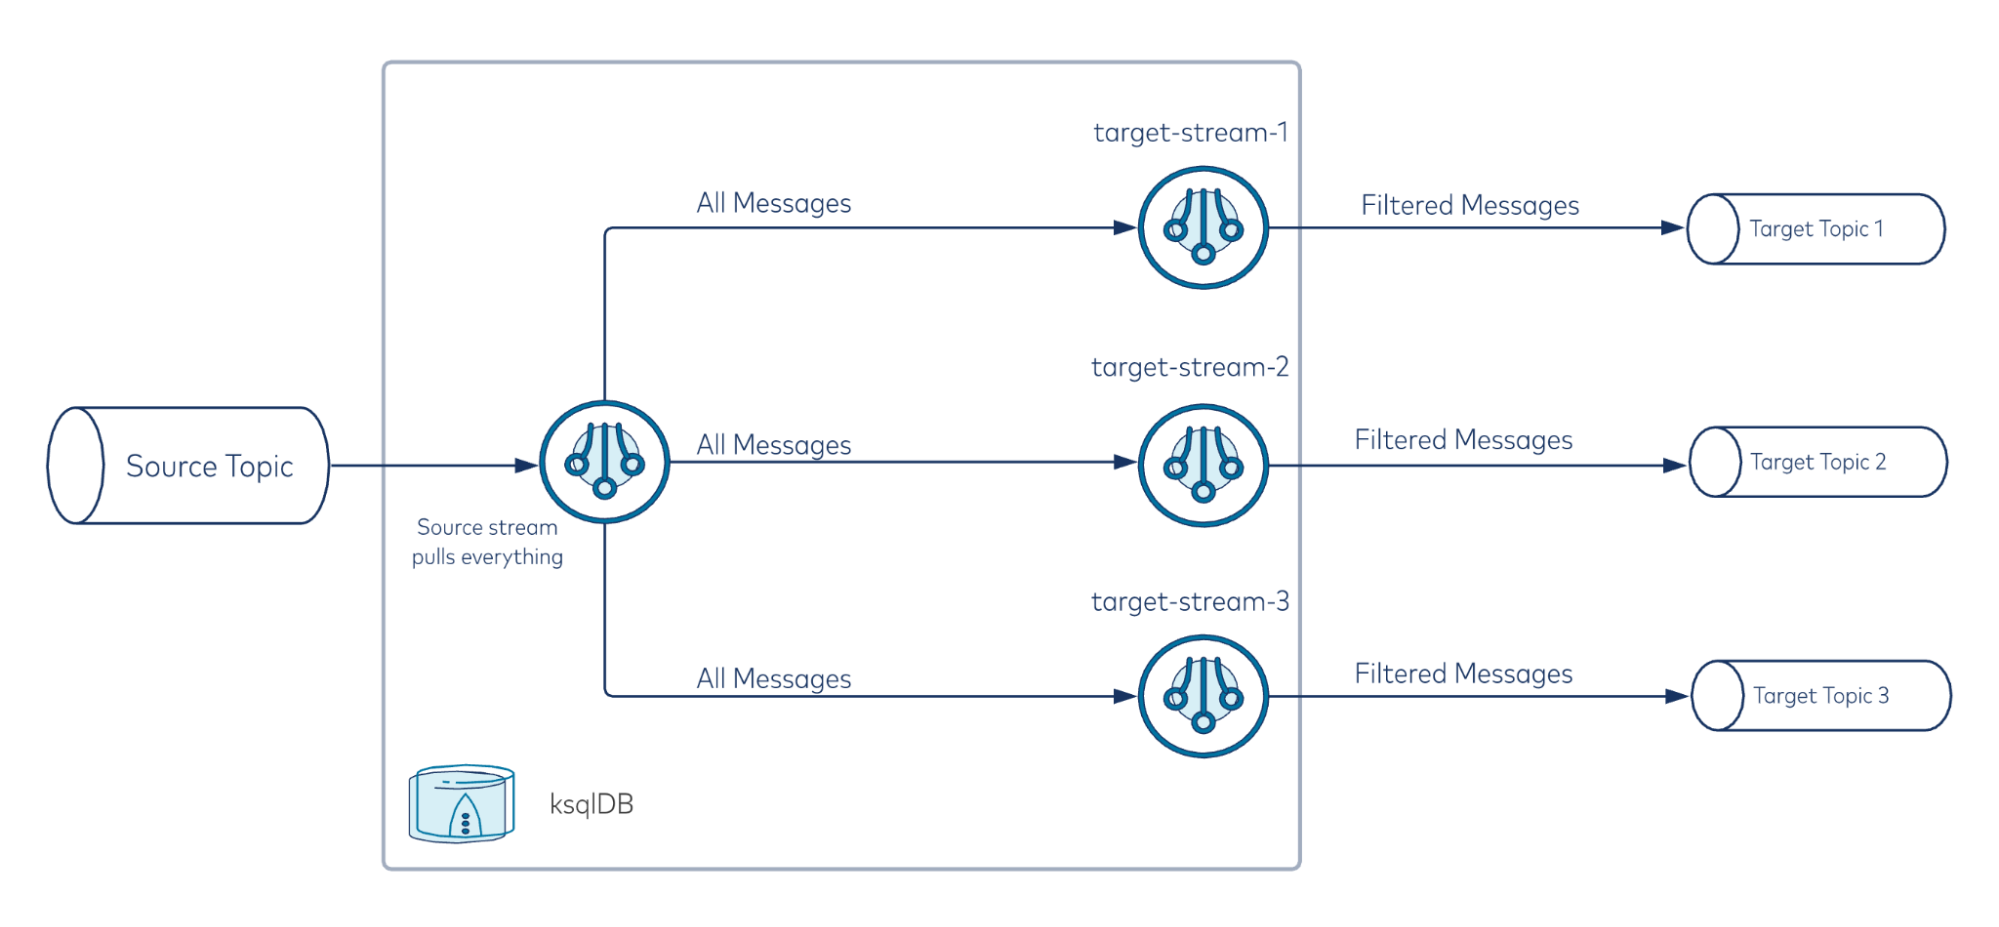 Overview of routing messages